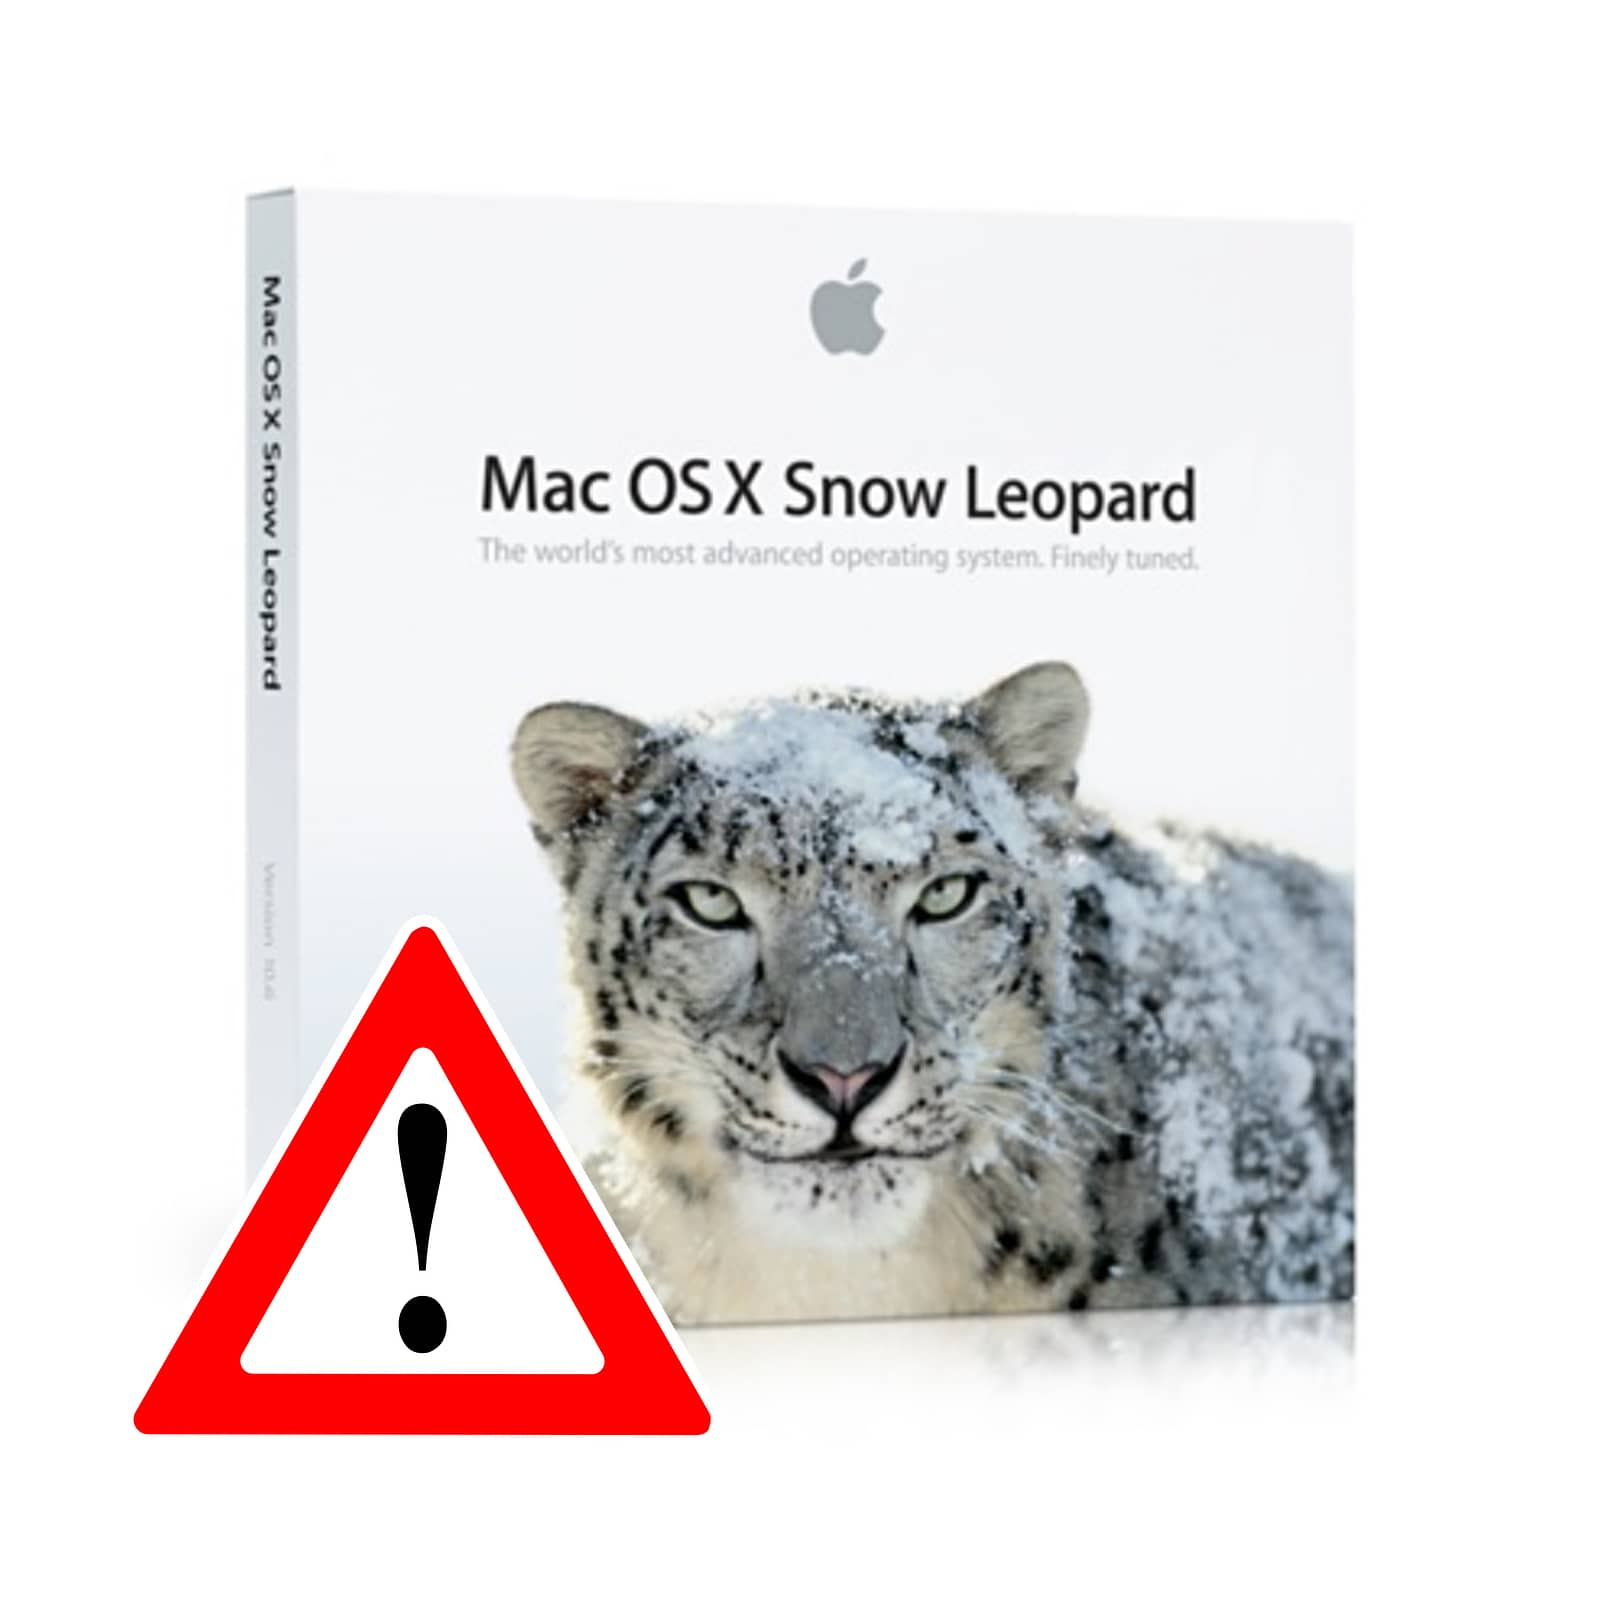 Image of OS X Snow Leopard box, which is what the latest exploits from CIA Vault 7 run on.